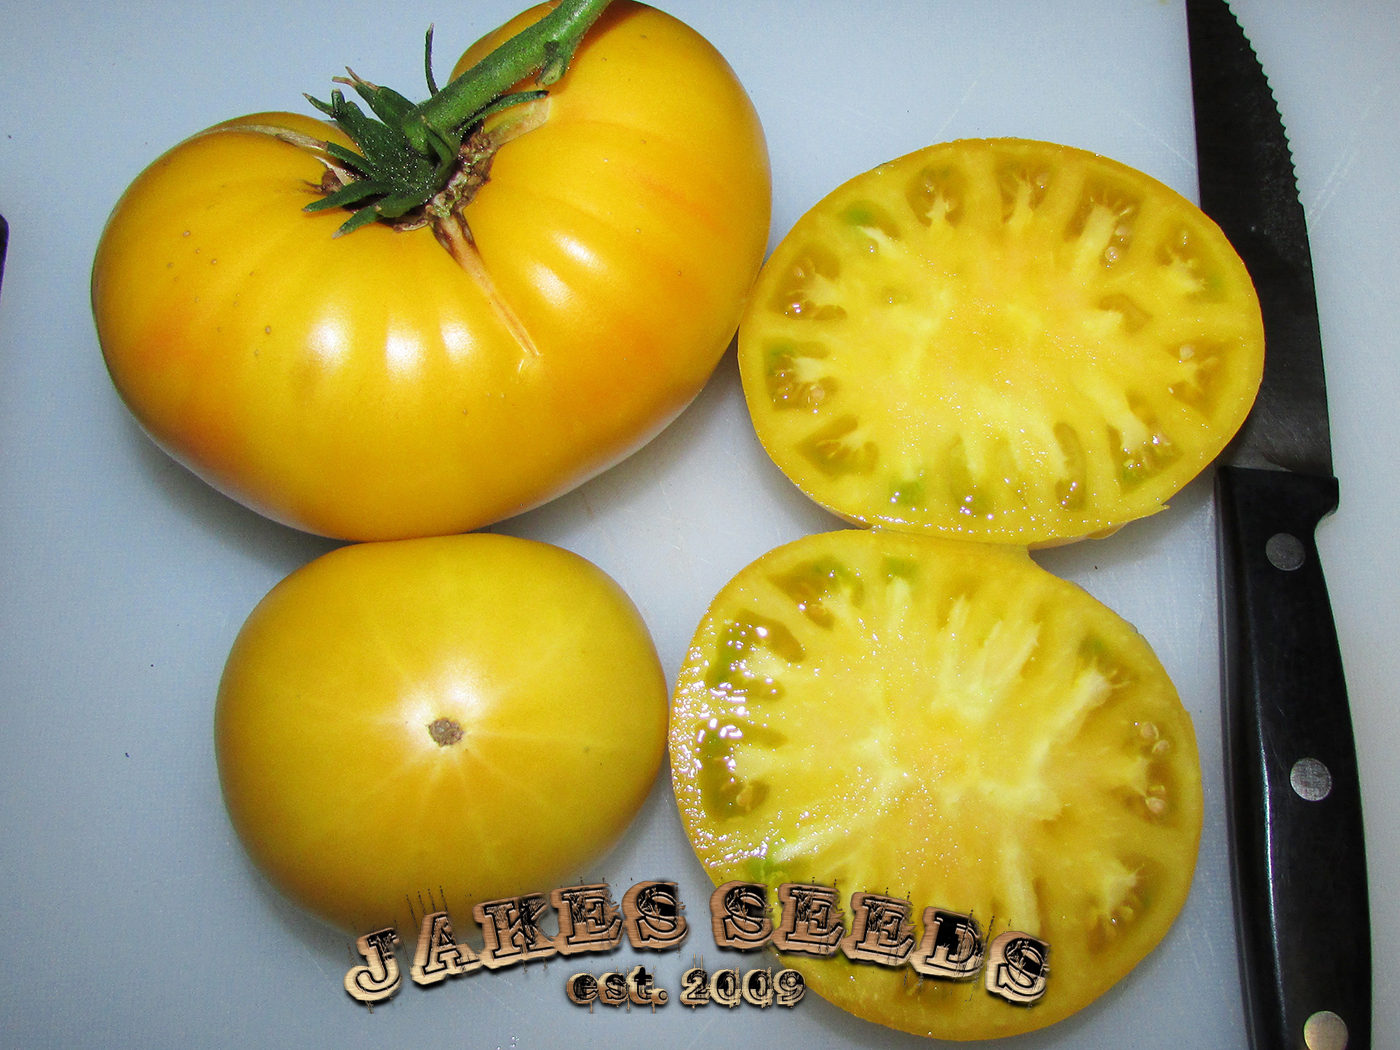 Candy's Old Yellow Heirloom Tomato Seeds - Jake's Seeds